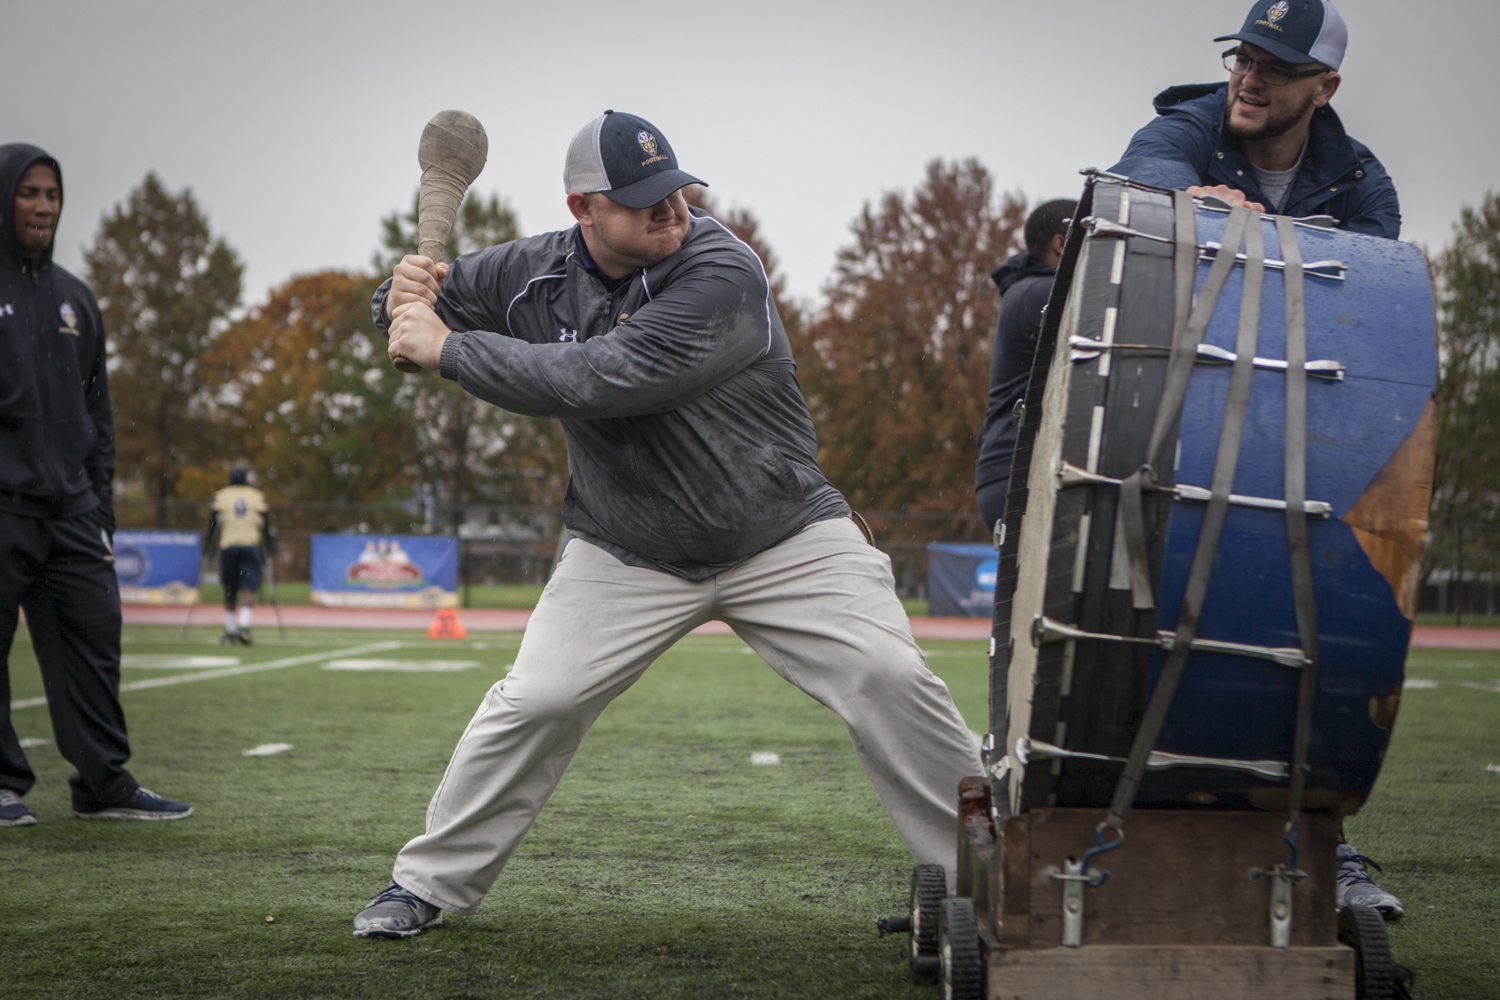 Coach Phil Endicott swings at the team's drum during a home game against Anna Maria College on November 14, 2015 at Gallaudet University. The drum is used because everyone can feel the emanating vibrations and it's used during practices and games to signify important moments.